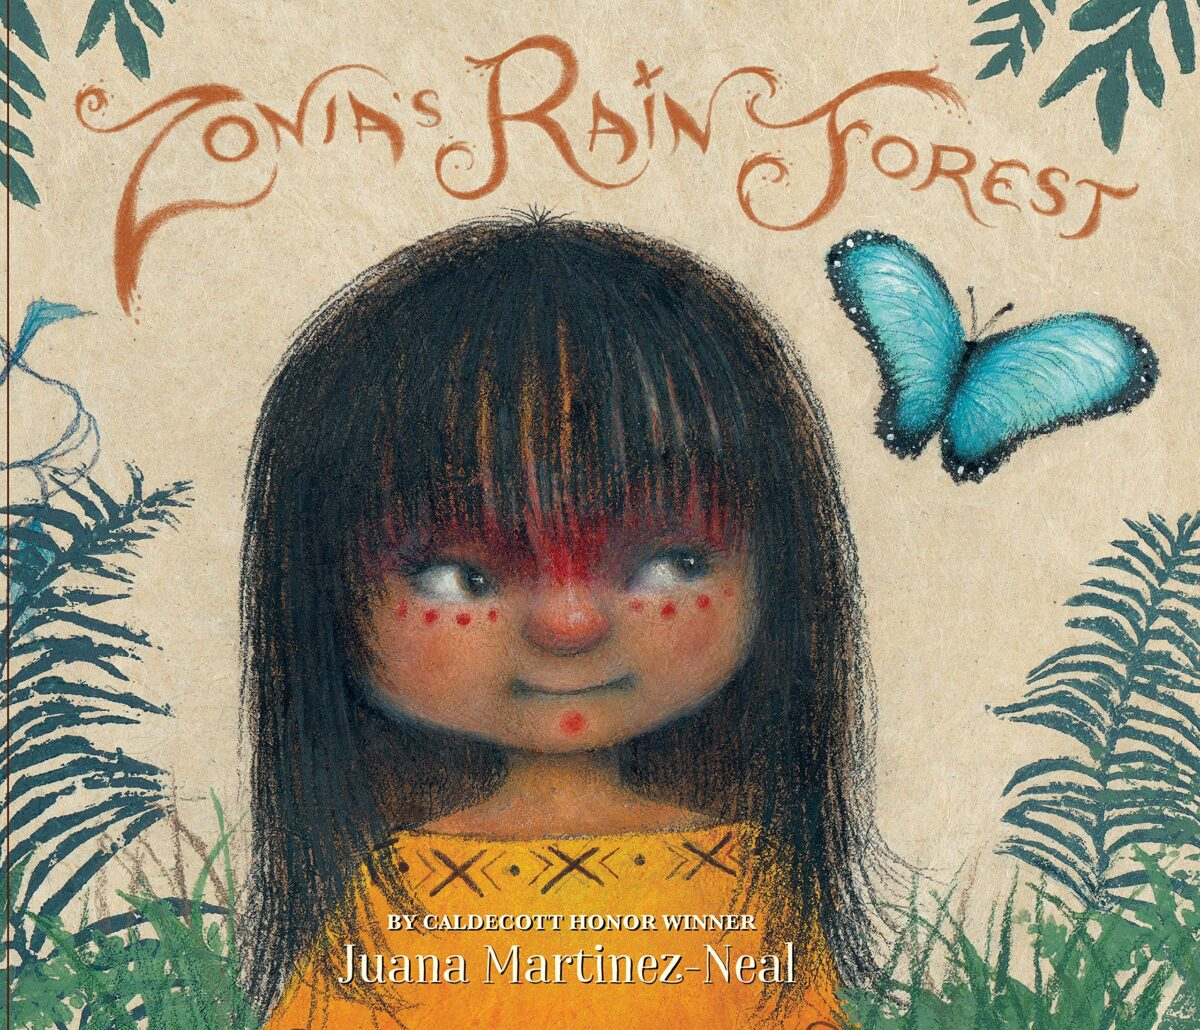 Book cover for Zonia's Rainforest by Juana Martinez-Neal